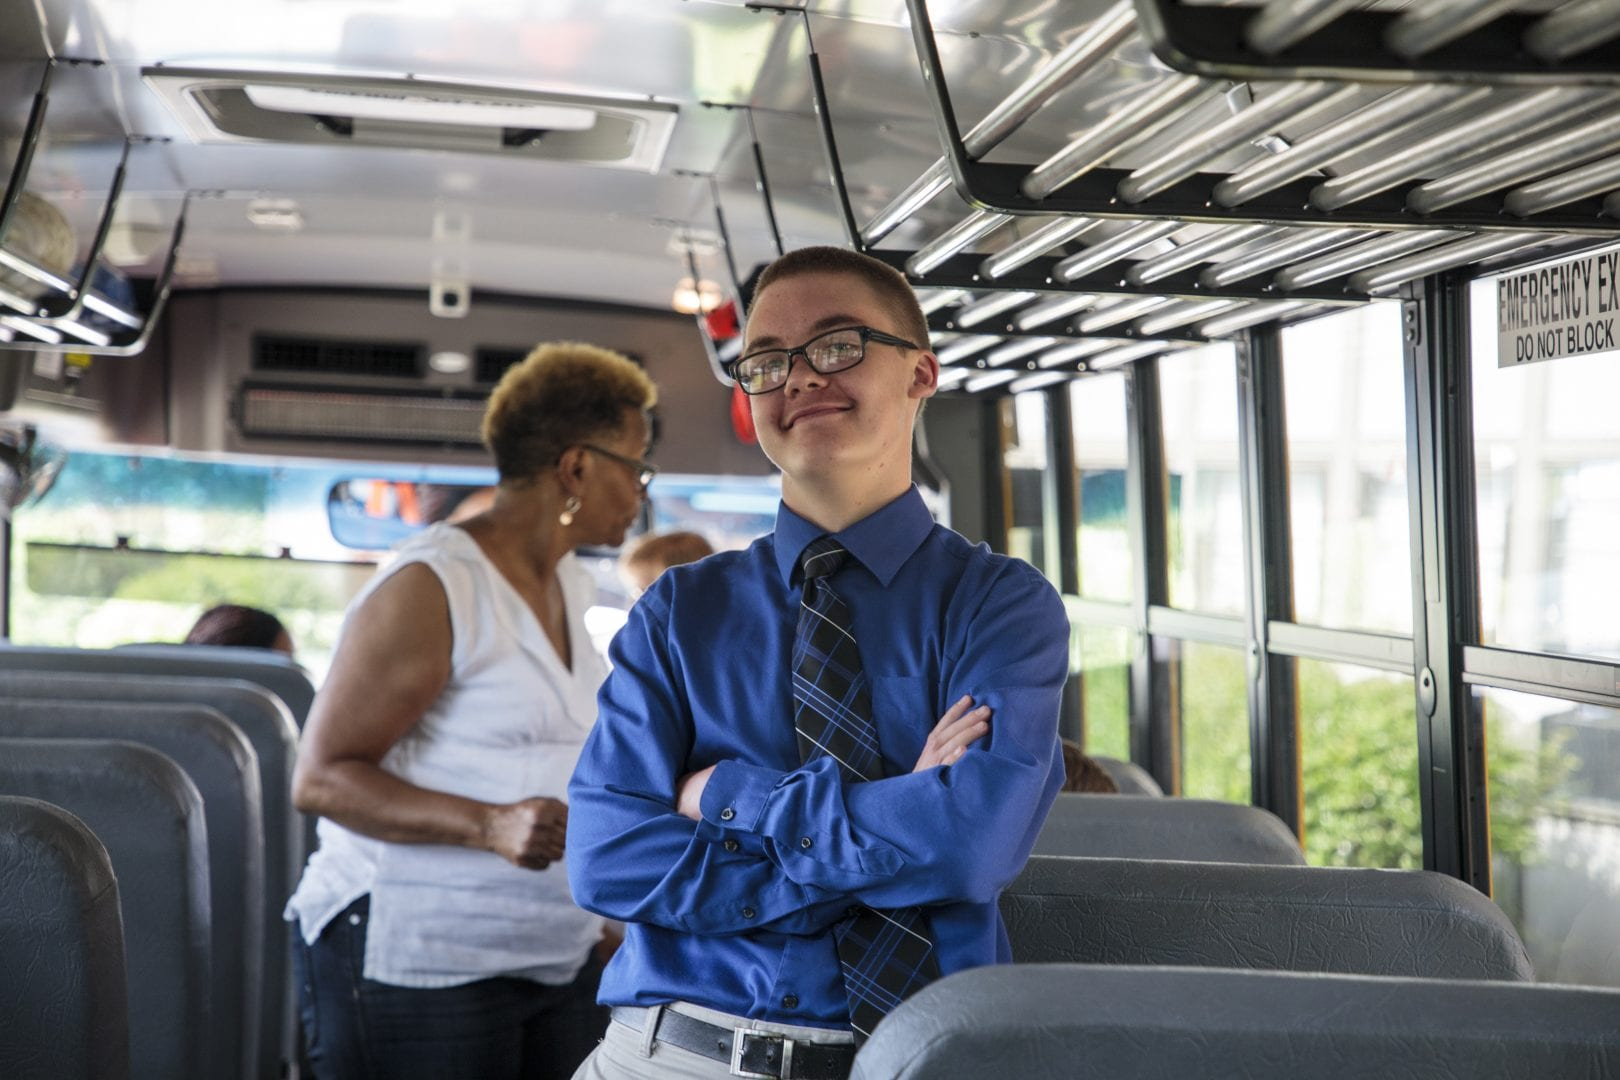 a boy on a school bus in a button up shirt and tie. His arms are crossed confidently.